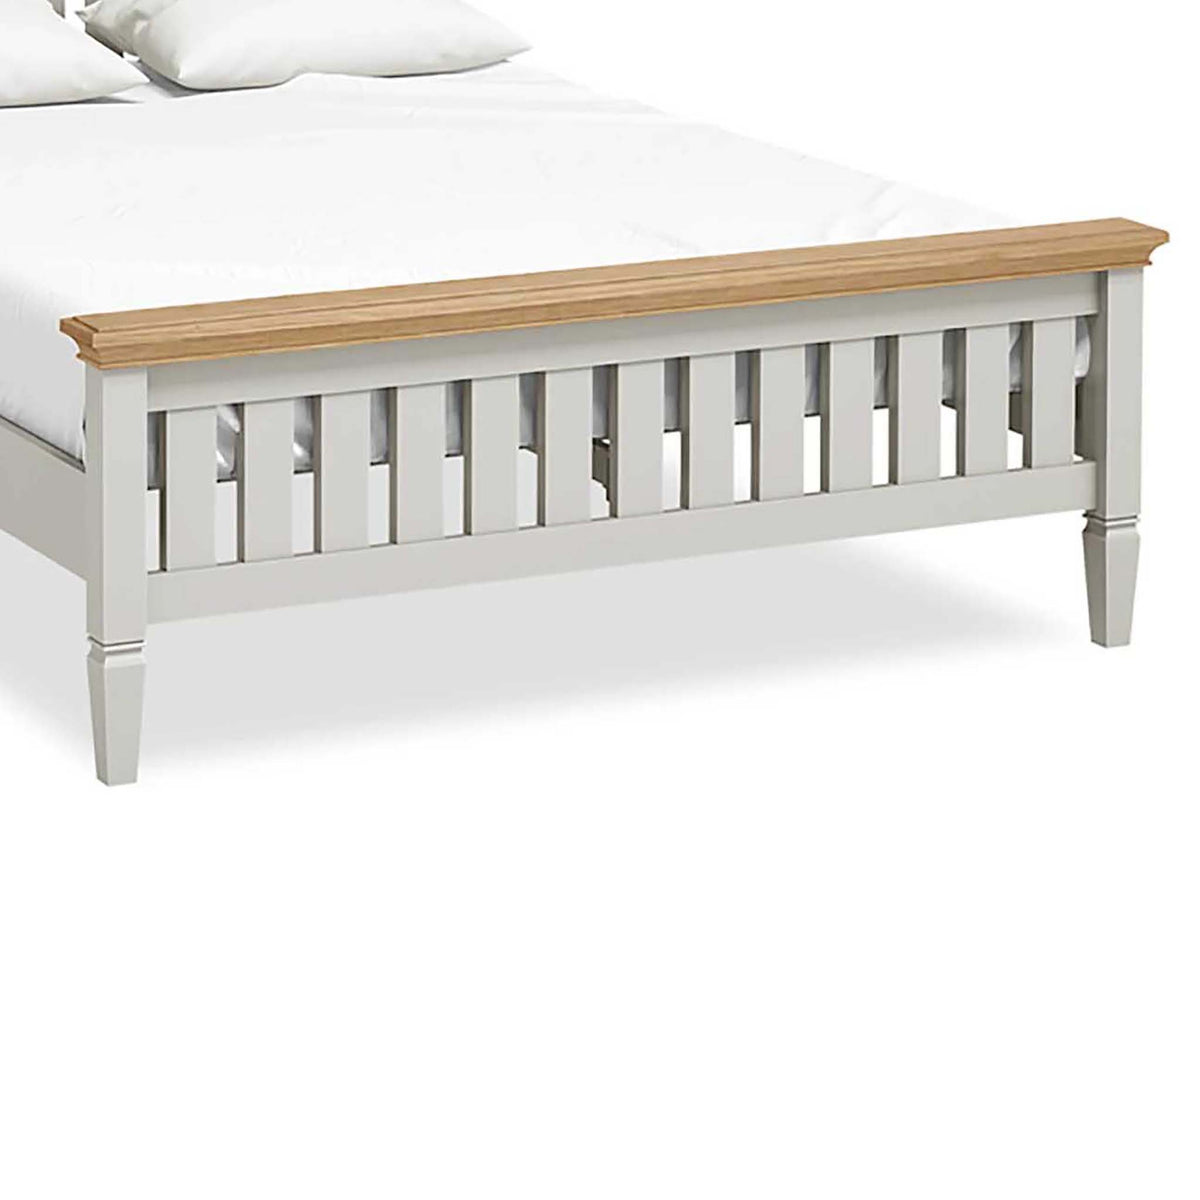 Normandy Grey 5' Bed Frame - Close Up of Bed Footer